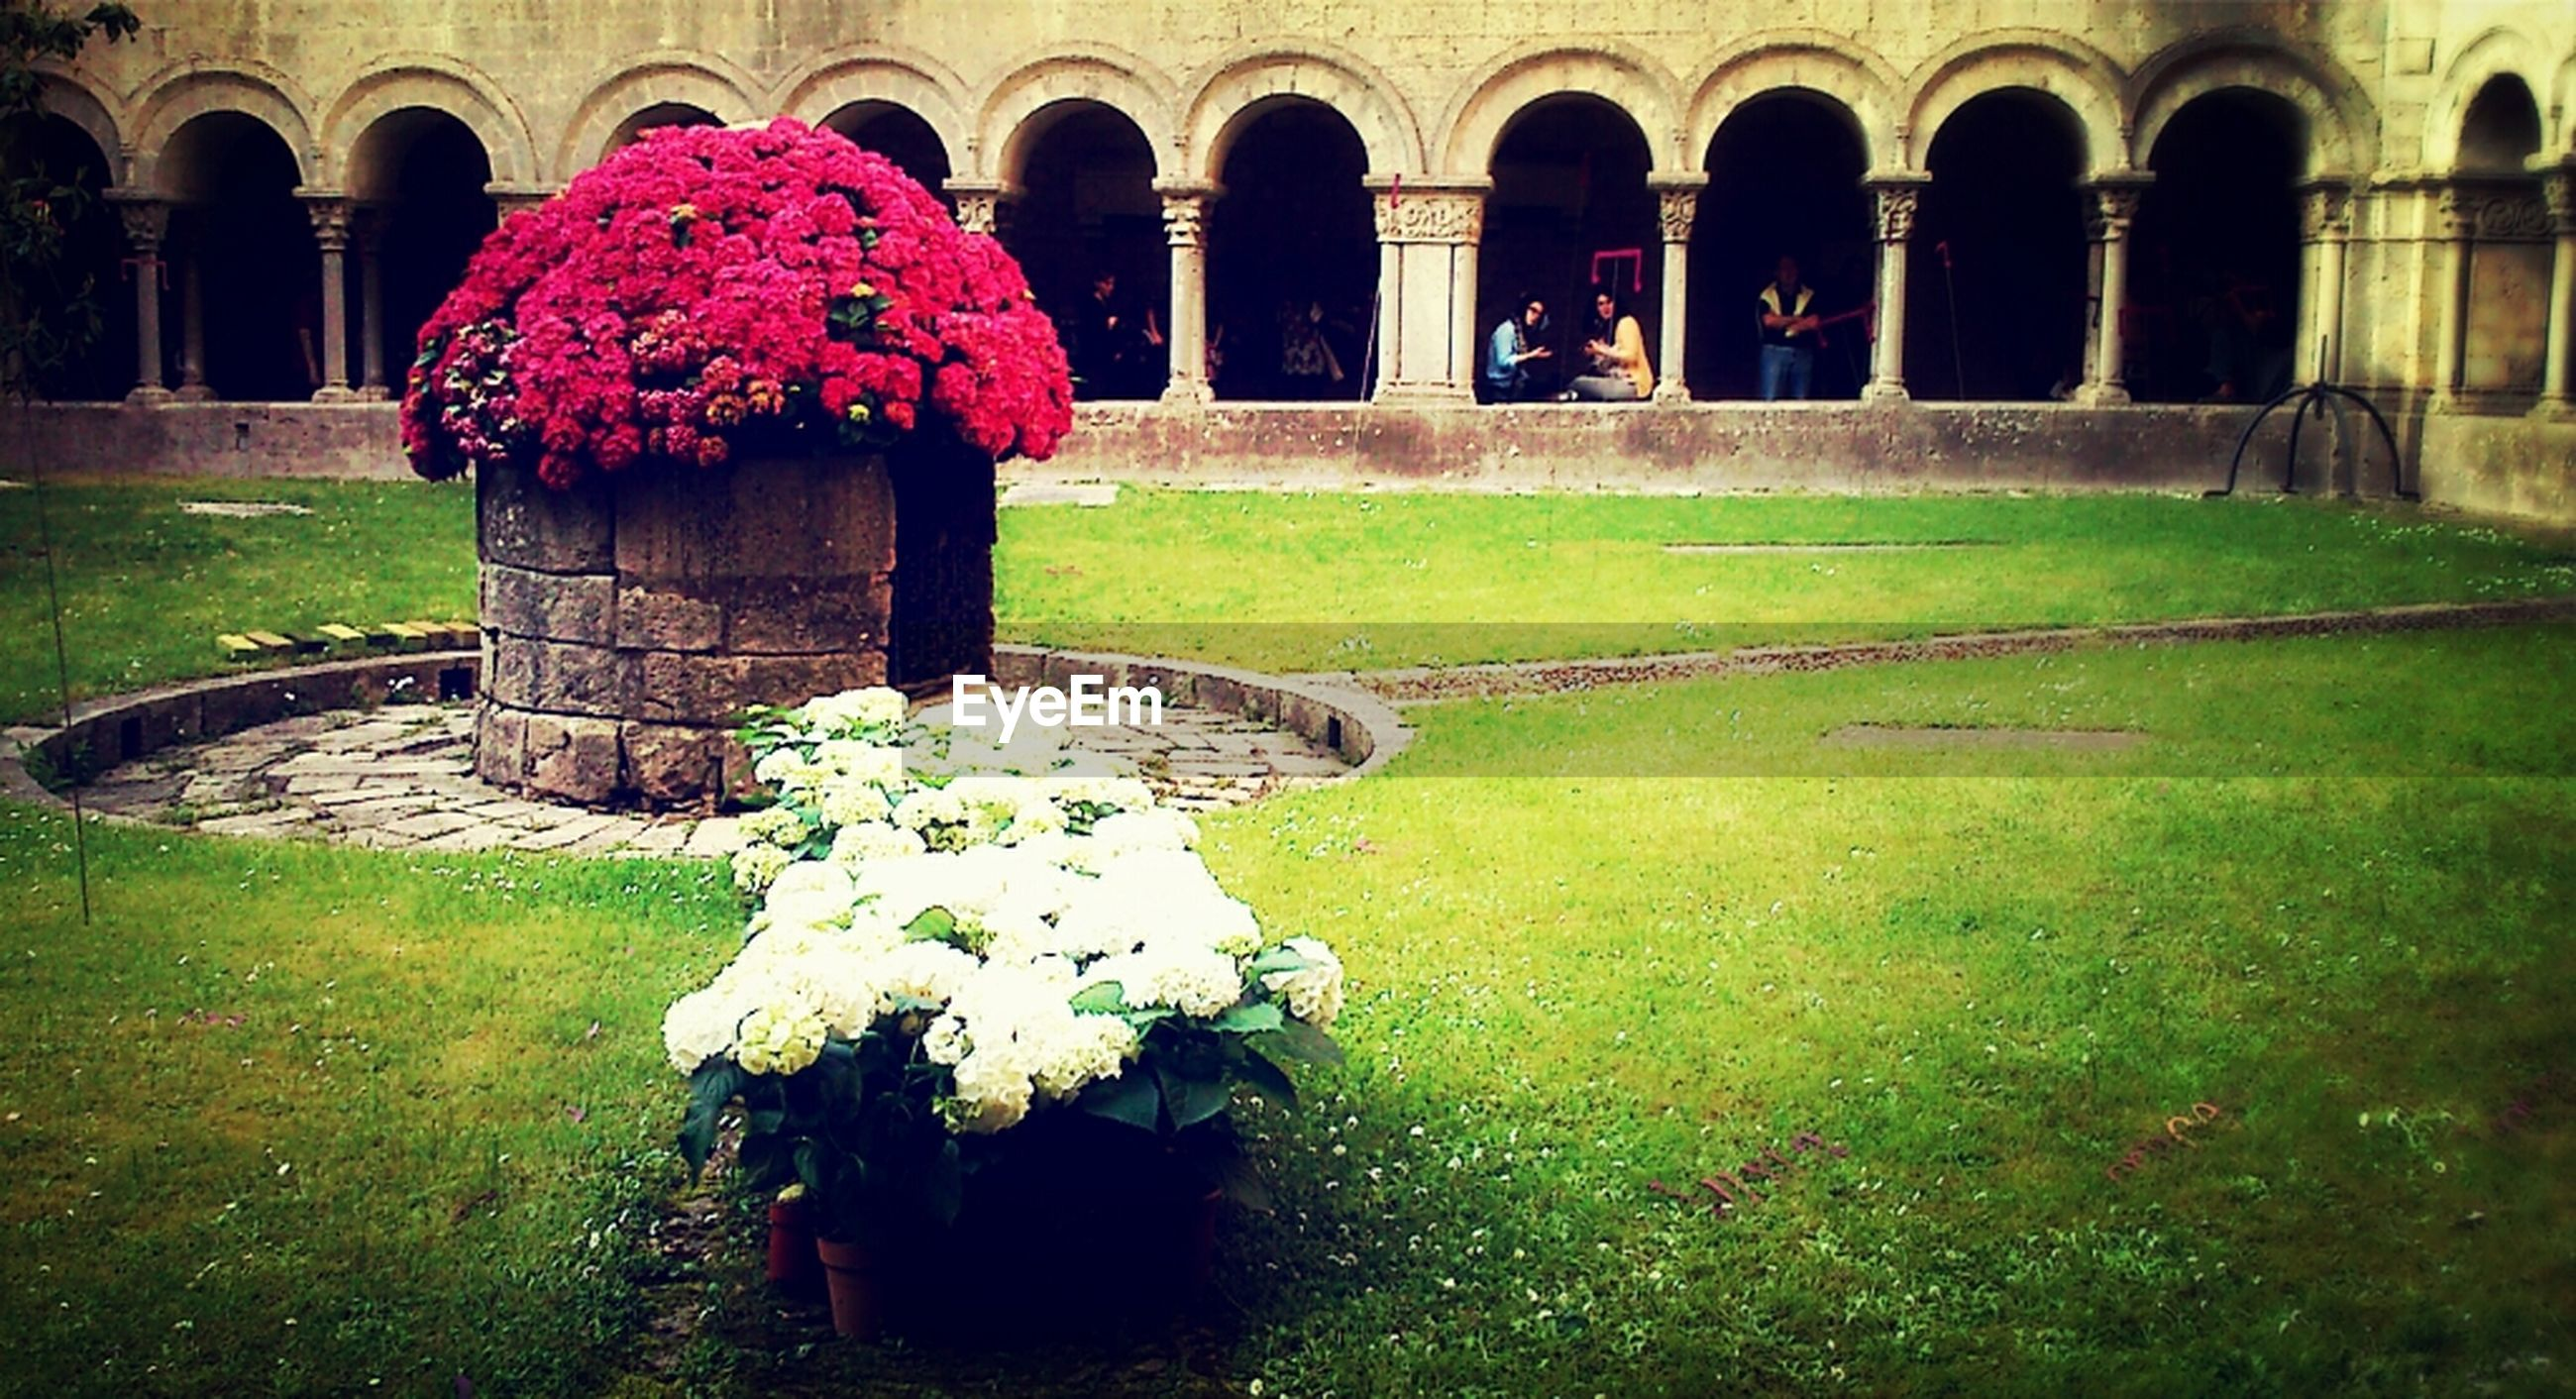 flower, arch, built structure, architecture, grass, plant, formal garden, lawn, petal, growth, building exterior, fragility, freshness, park - man made space, day, nature, outdoors, garden, green color, architectural column